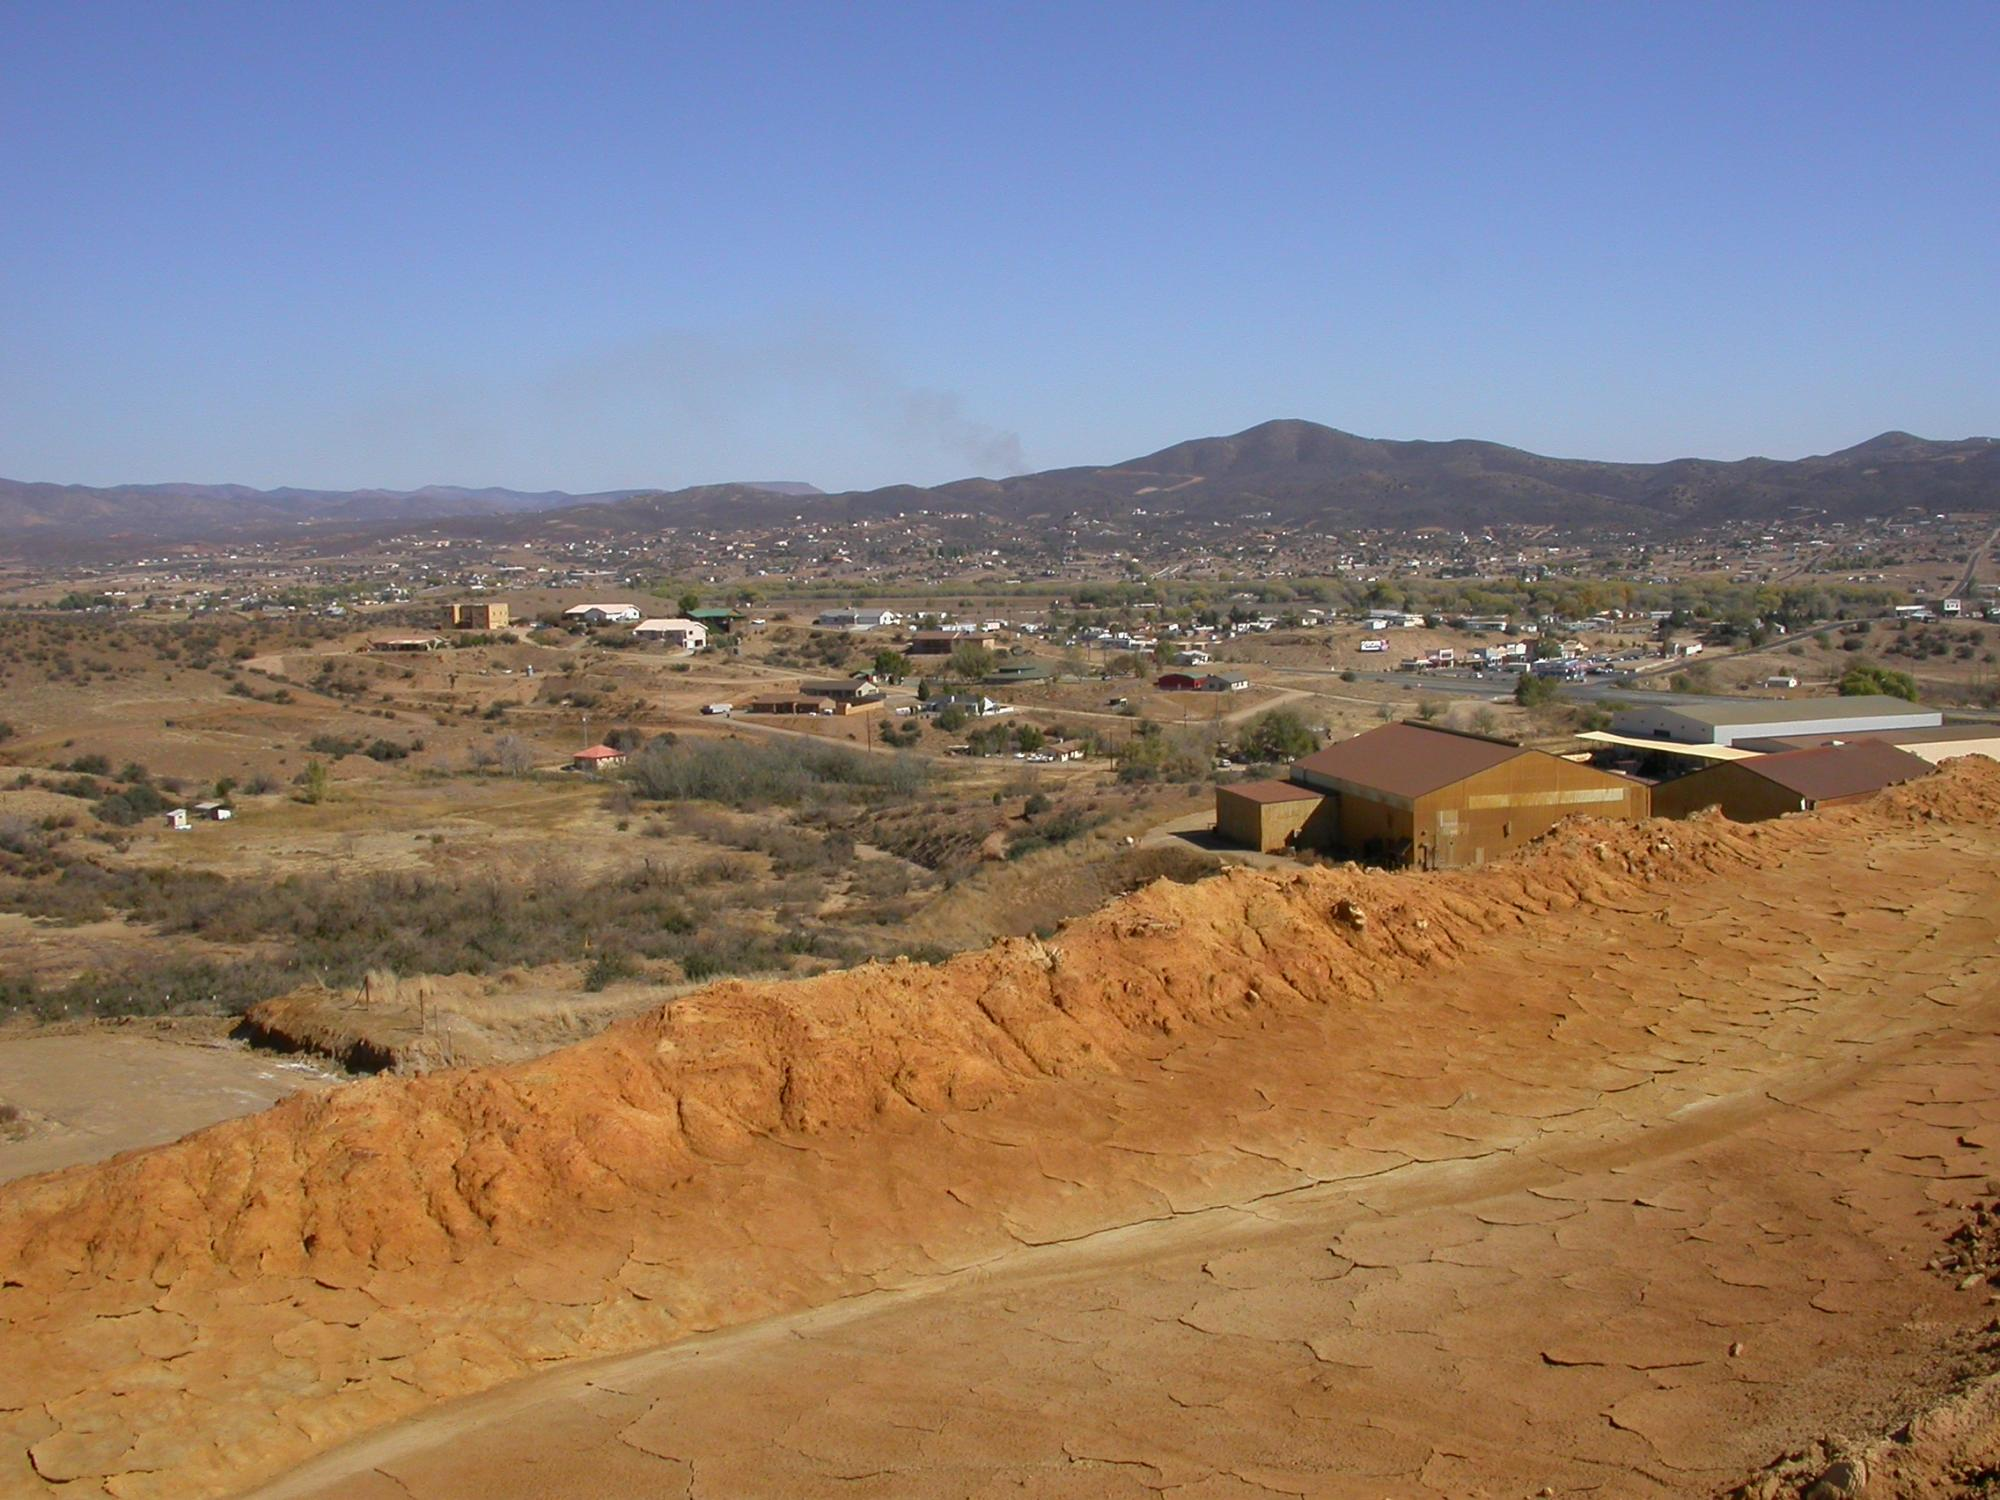 A view of the town of Dewey-Humboldt from the top of the Iron King mine tailings pile in Yavapai County.